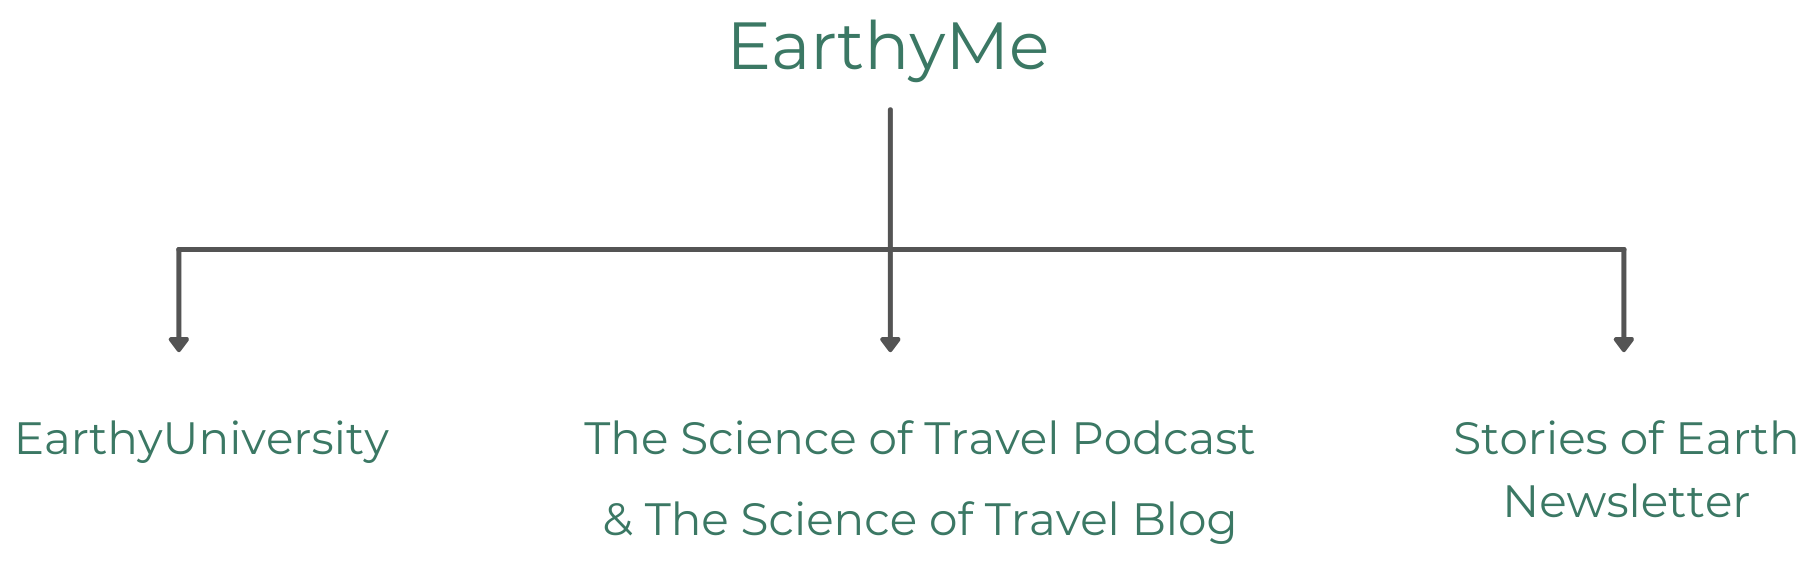 About EarthyMe and EarthyUniversity